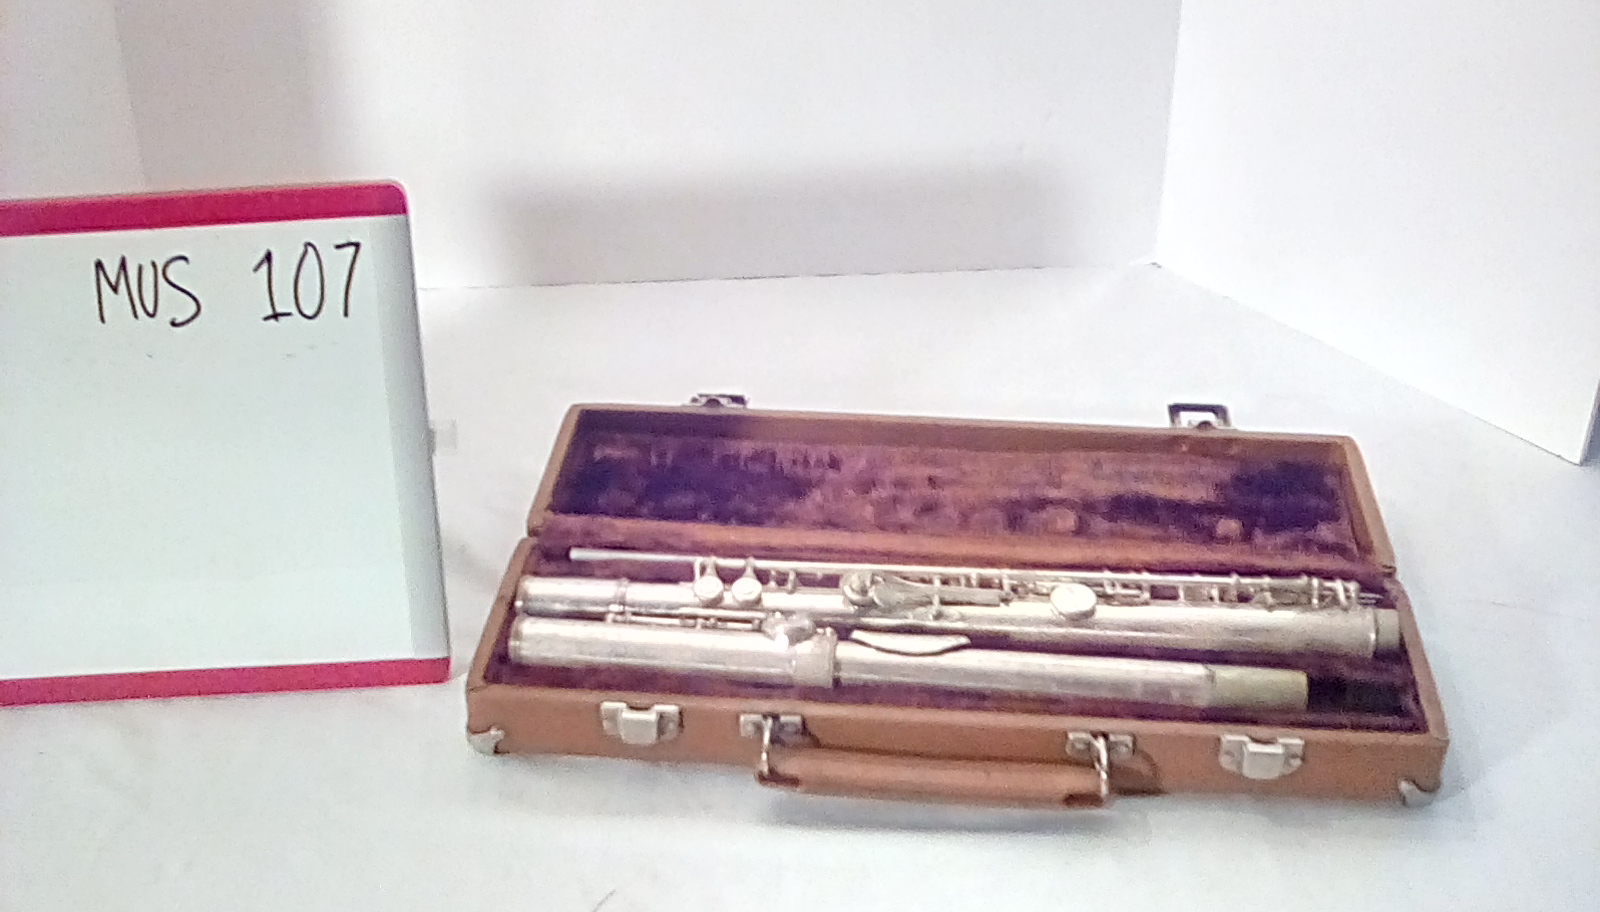 MUS107 flute in brown case